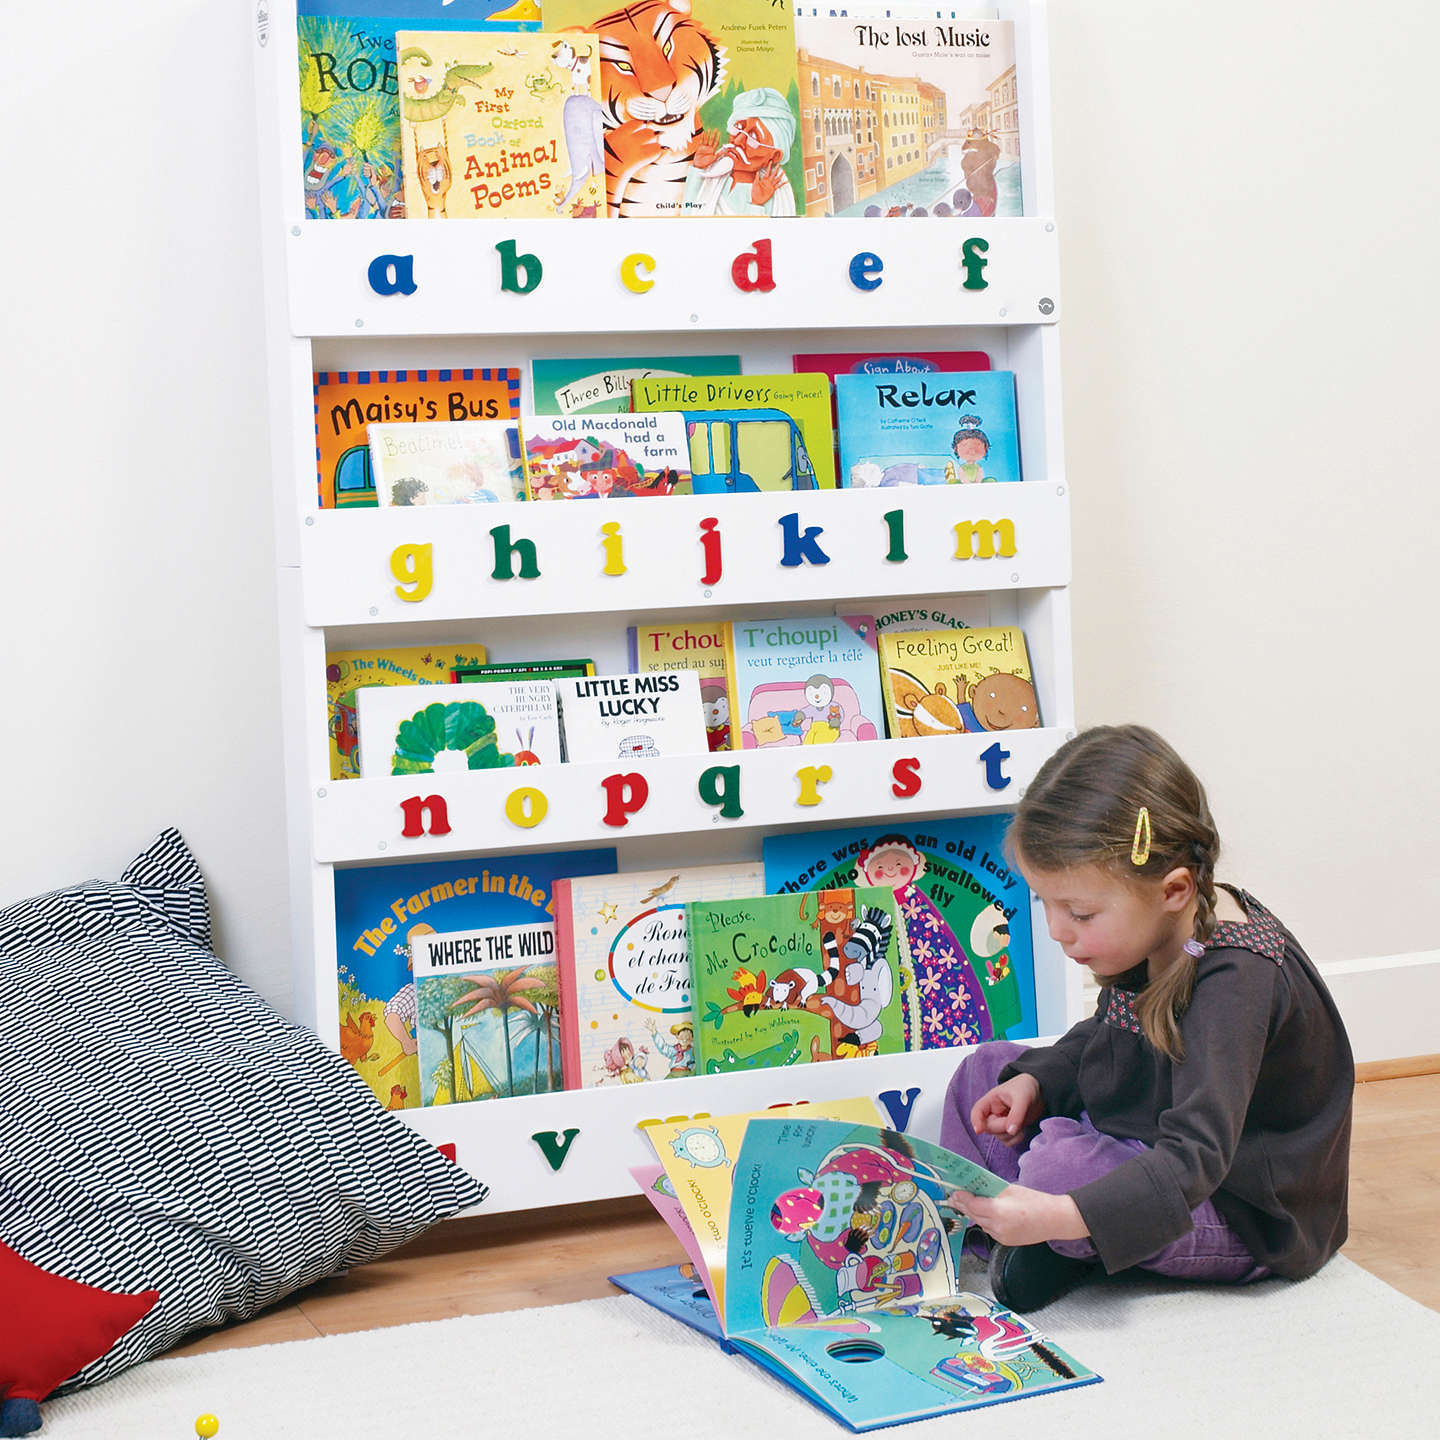 magic hayneedle s bookcase cfm fields child bookcases product master magicgardenbookshelf fantasy garden